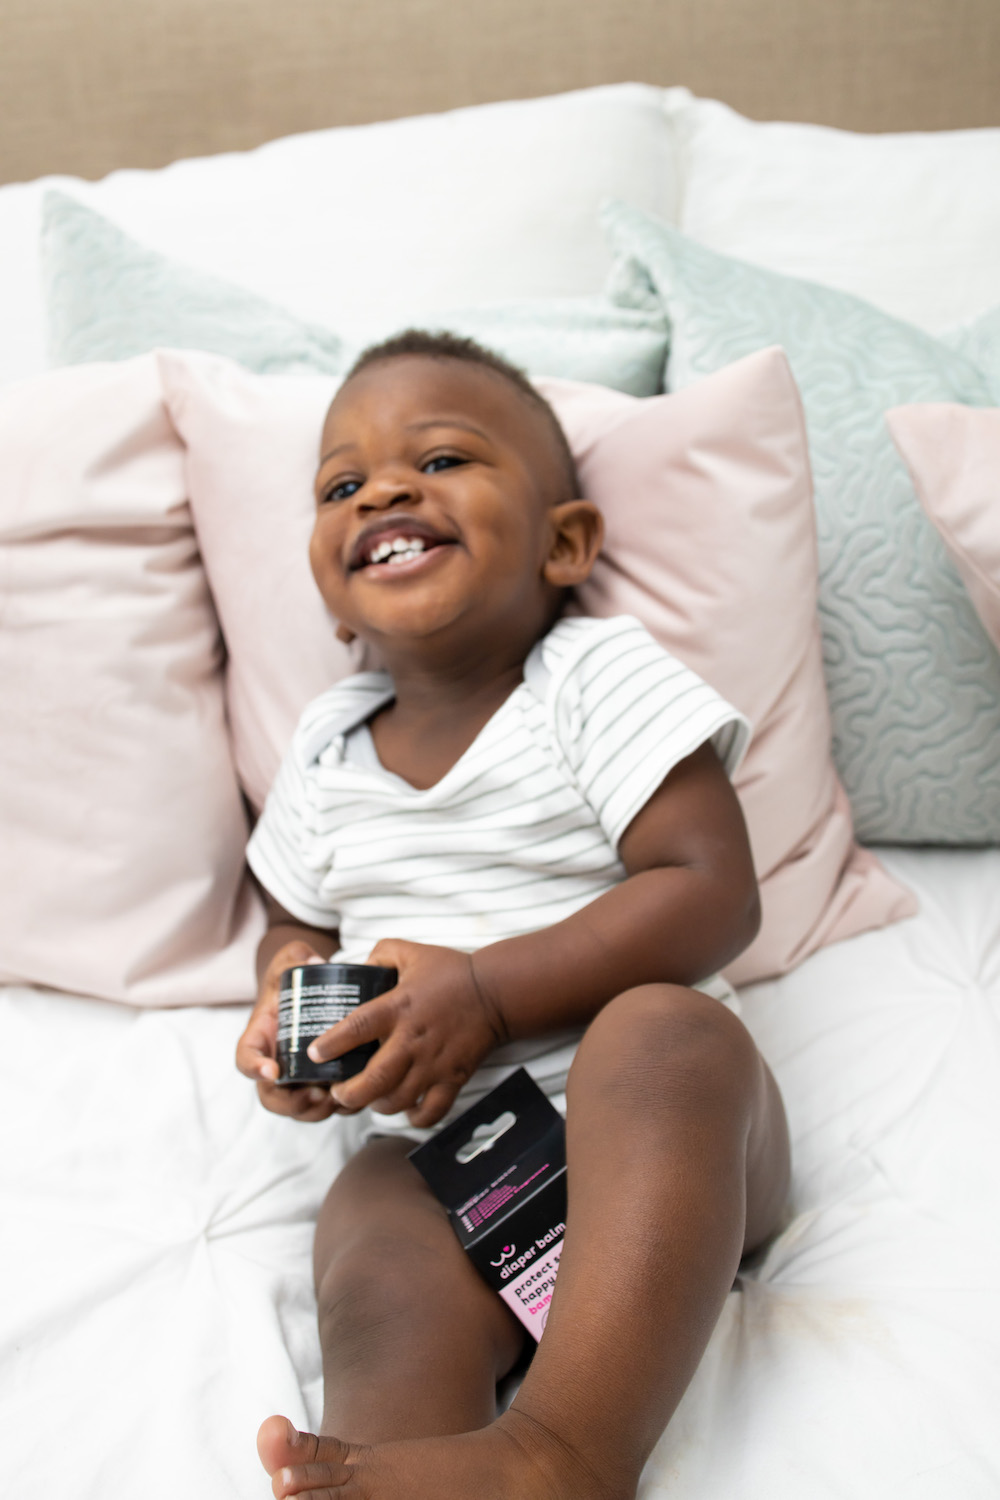 Baby boy laughing in bed with soothing products